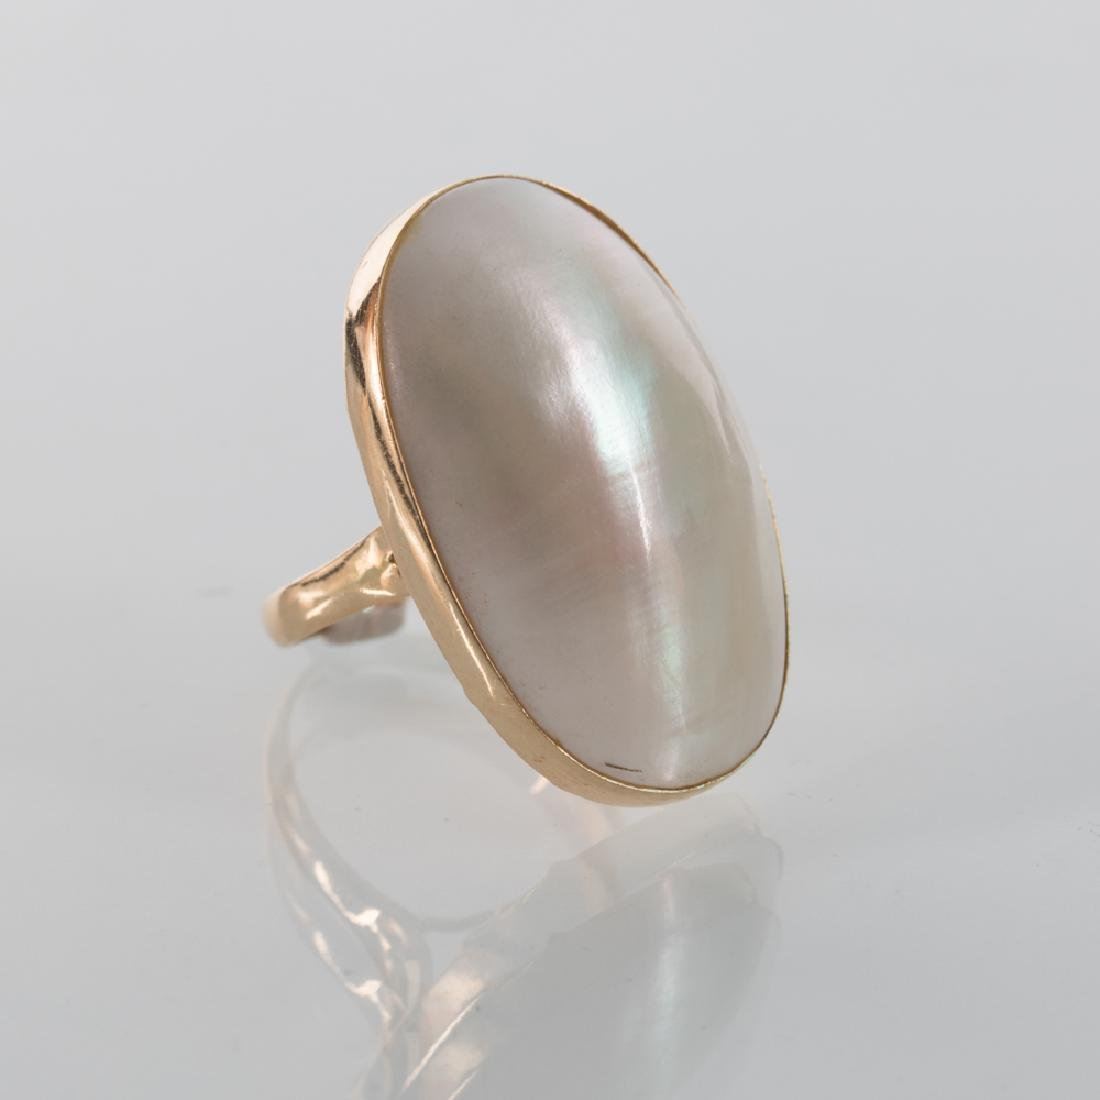 A 14kt. Yellow Gold and Mother of Pearl Ring.